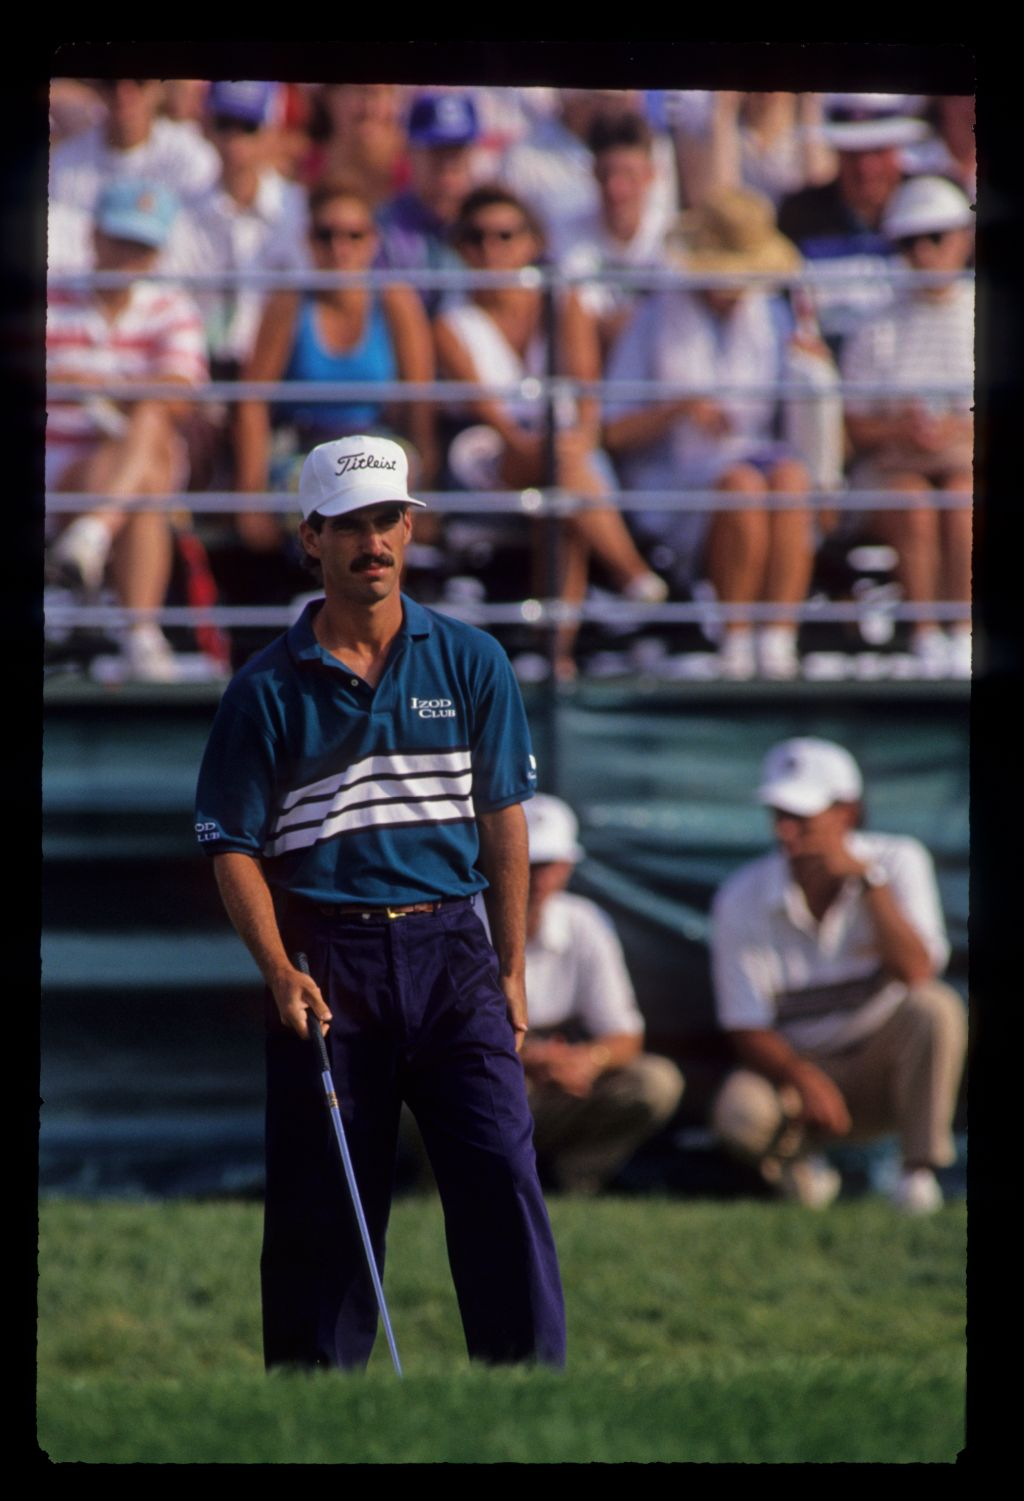 Corey Pavin considering his options during the 1991 US Open